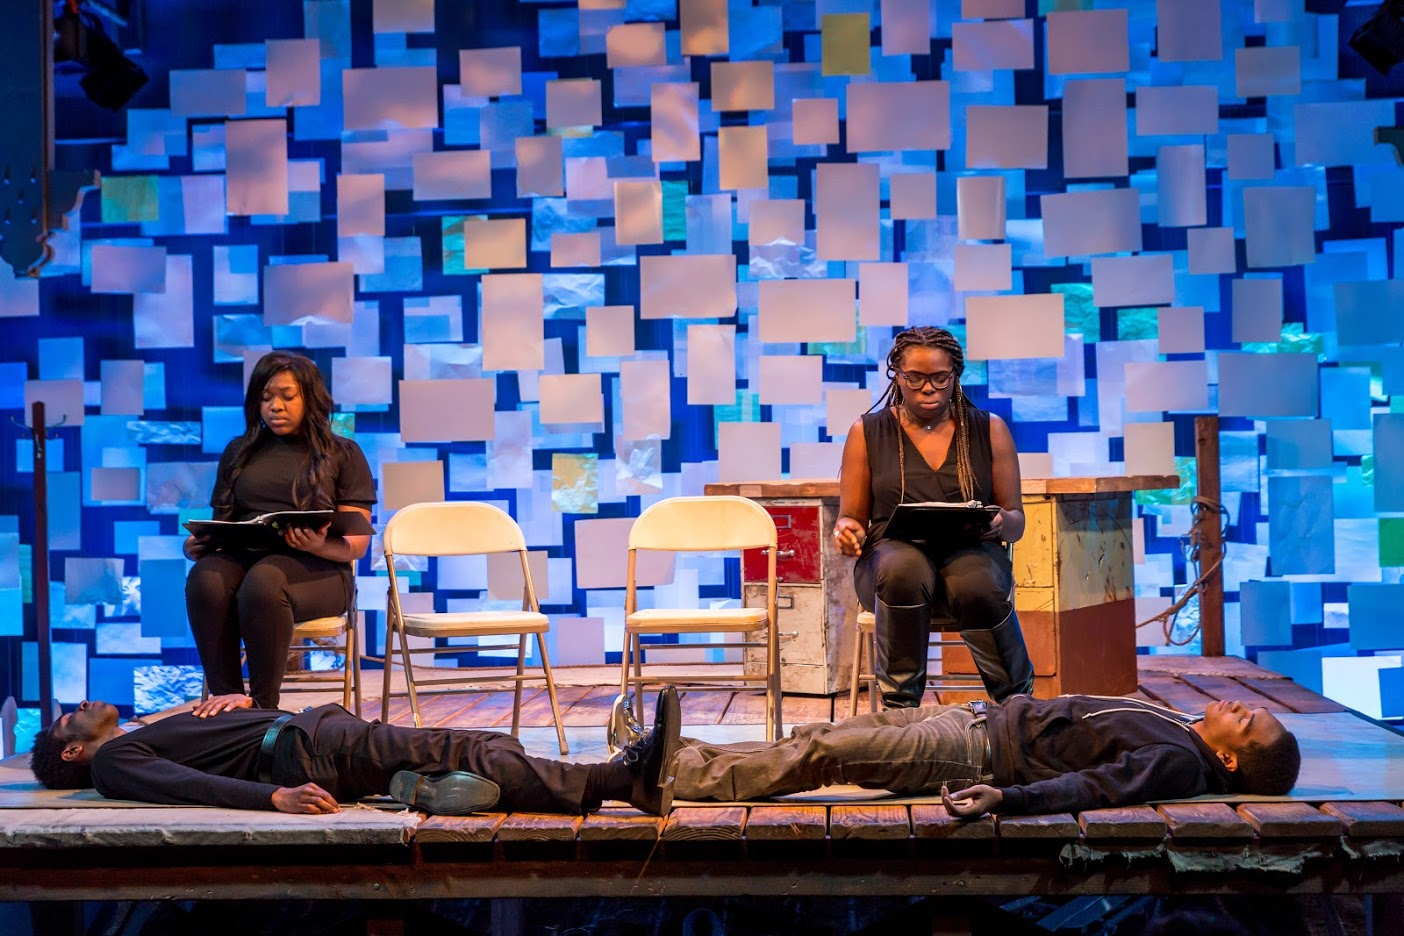 Cnfrontation-Theatre-Portland-Oregon-african-american-black-plays-production-image-4